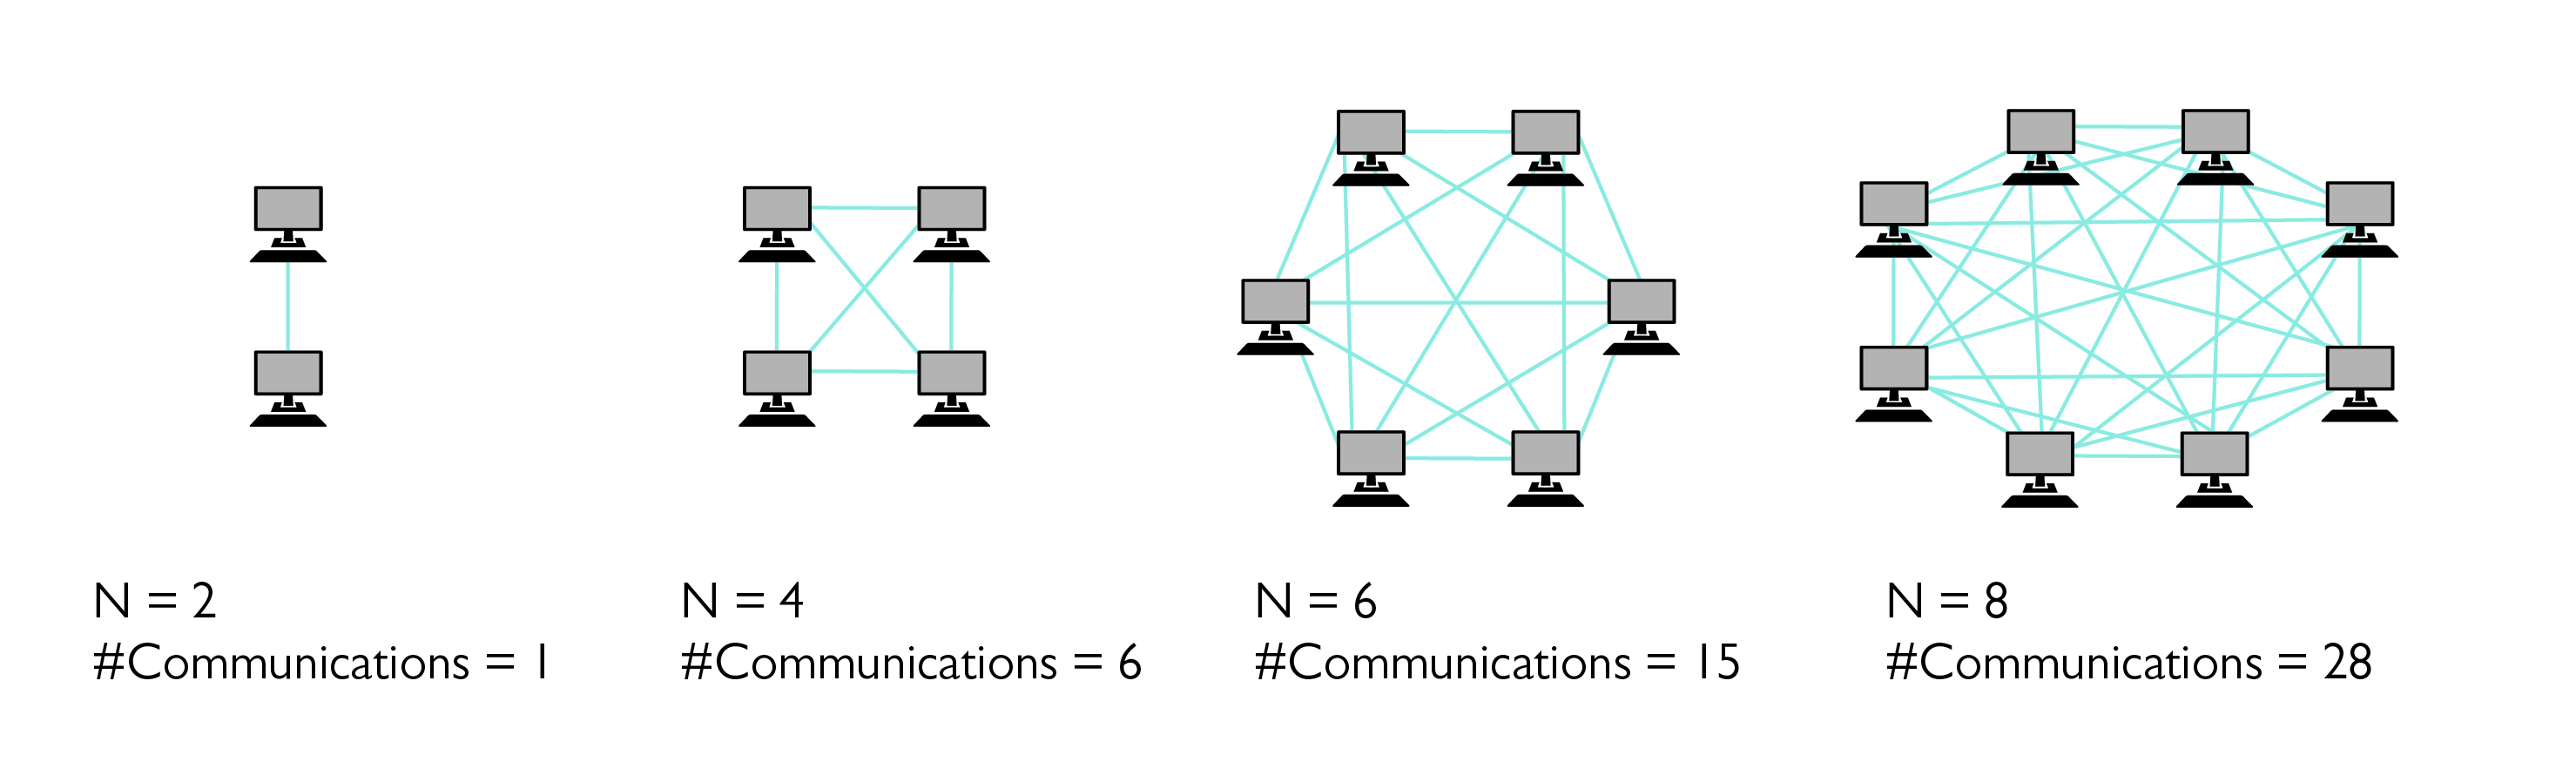 Diagram showing message-passing among computers